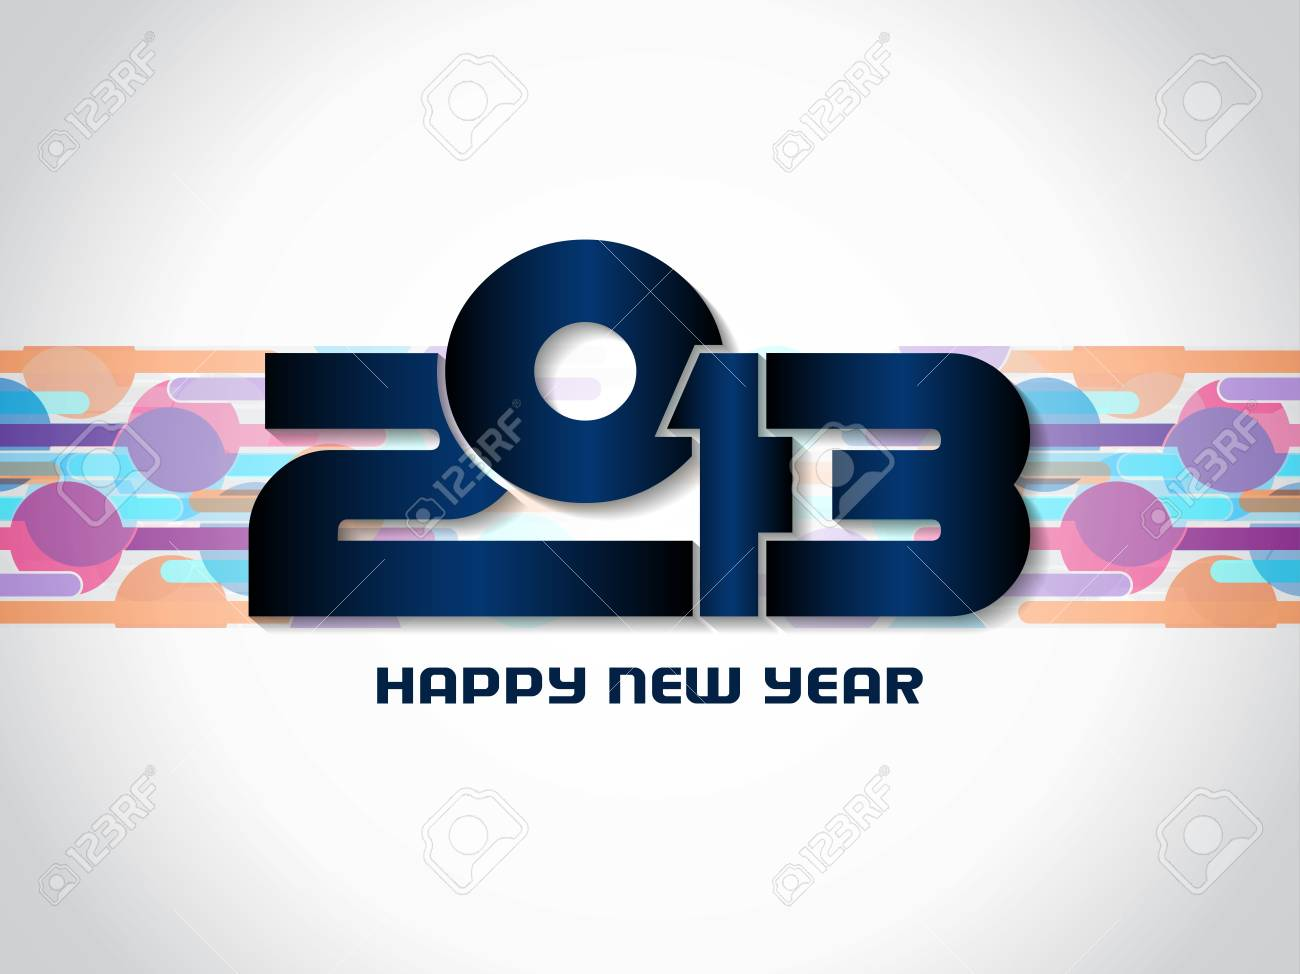 Beautiful happy new year 2013 background design Stock Vector - 17070870